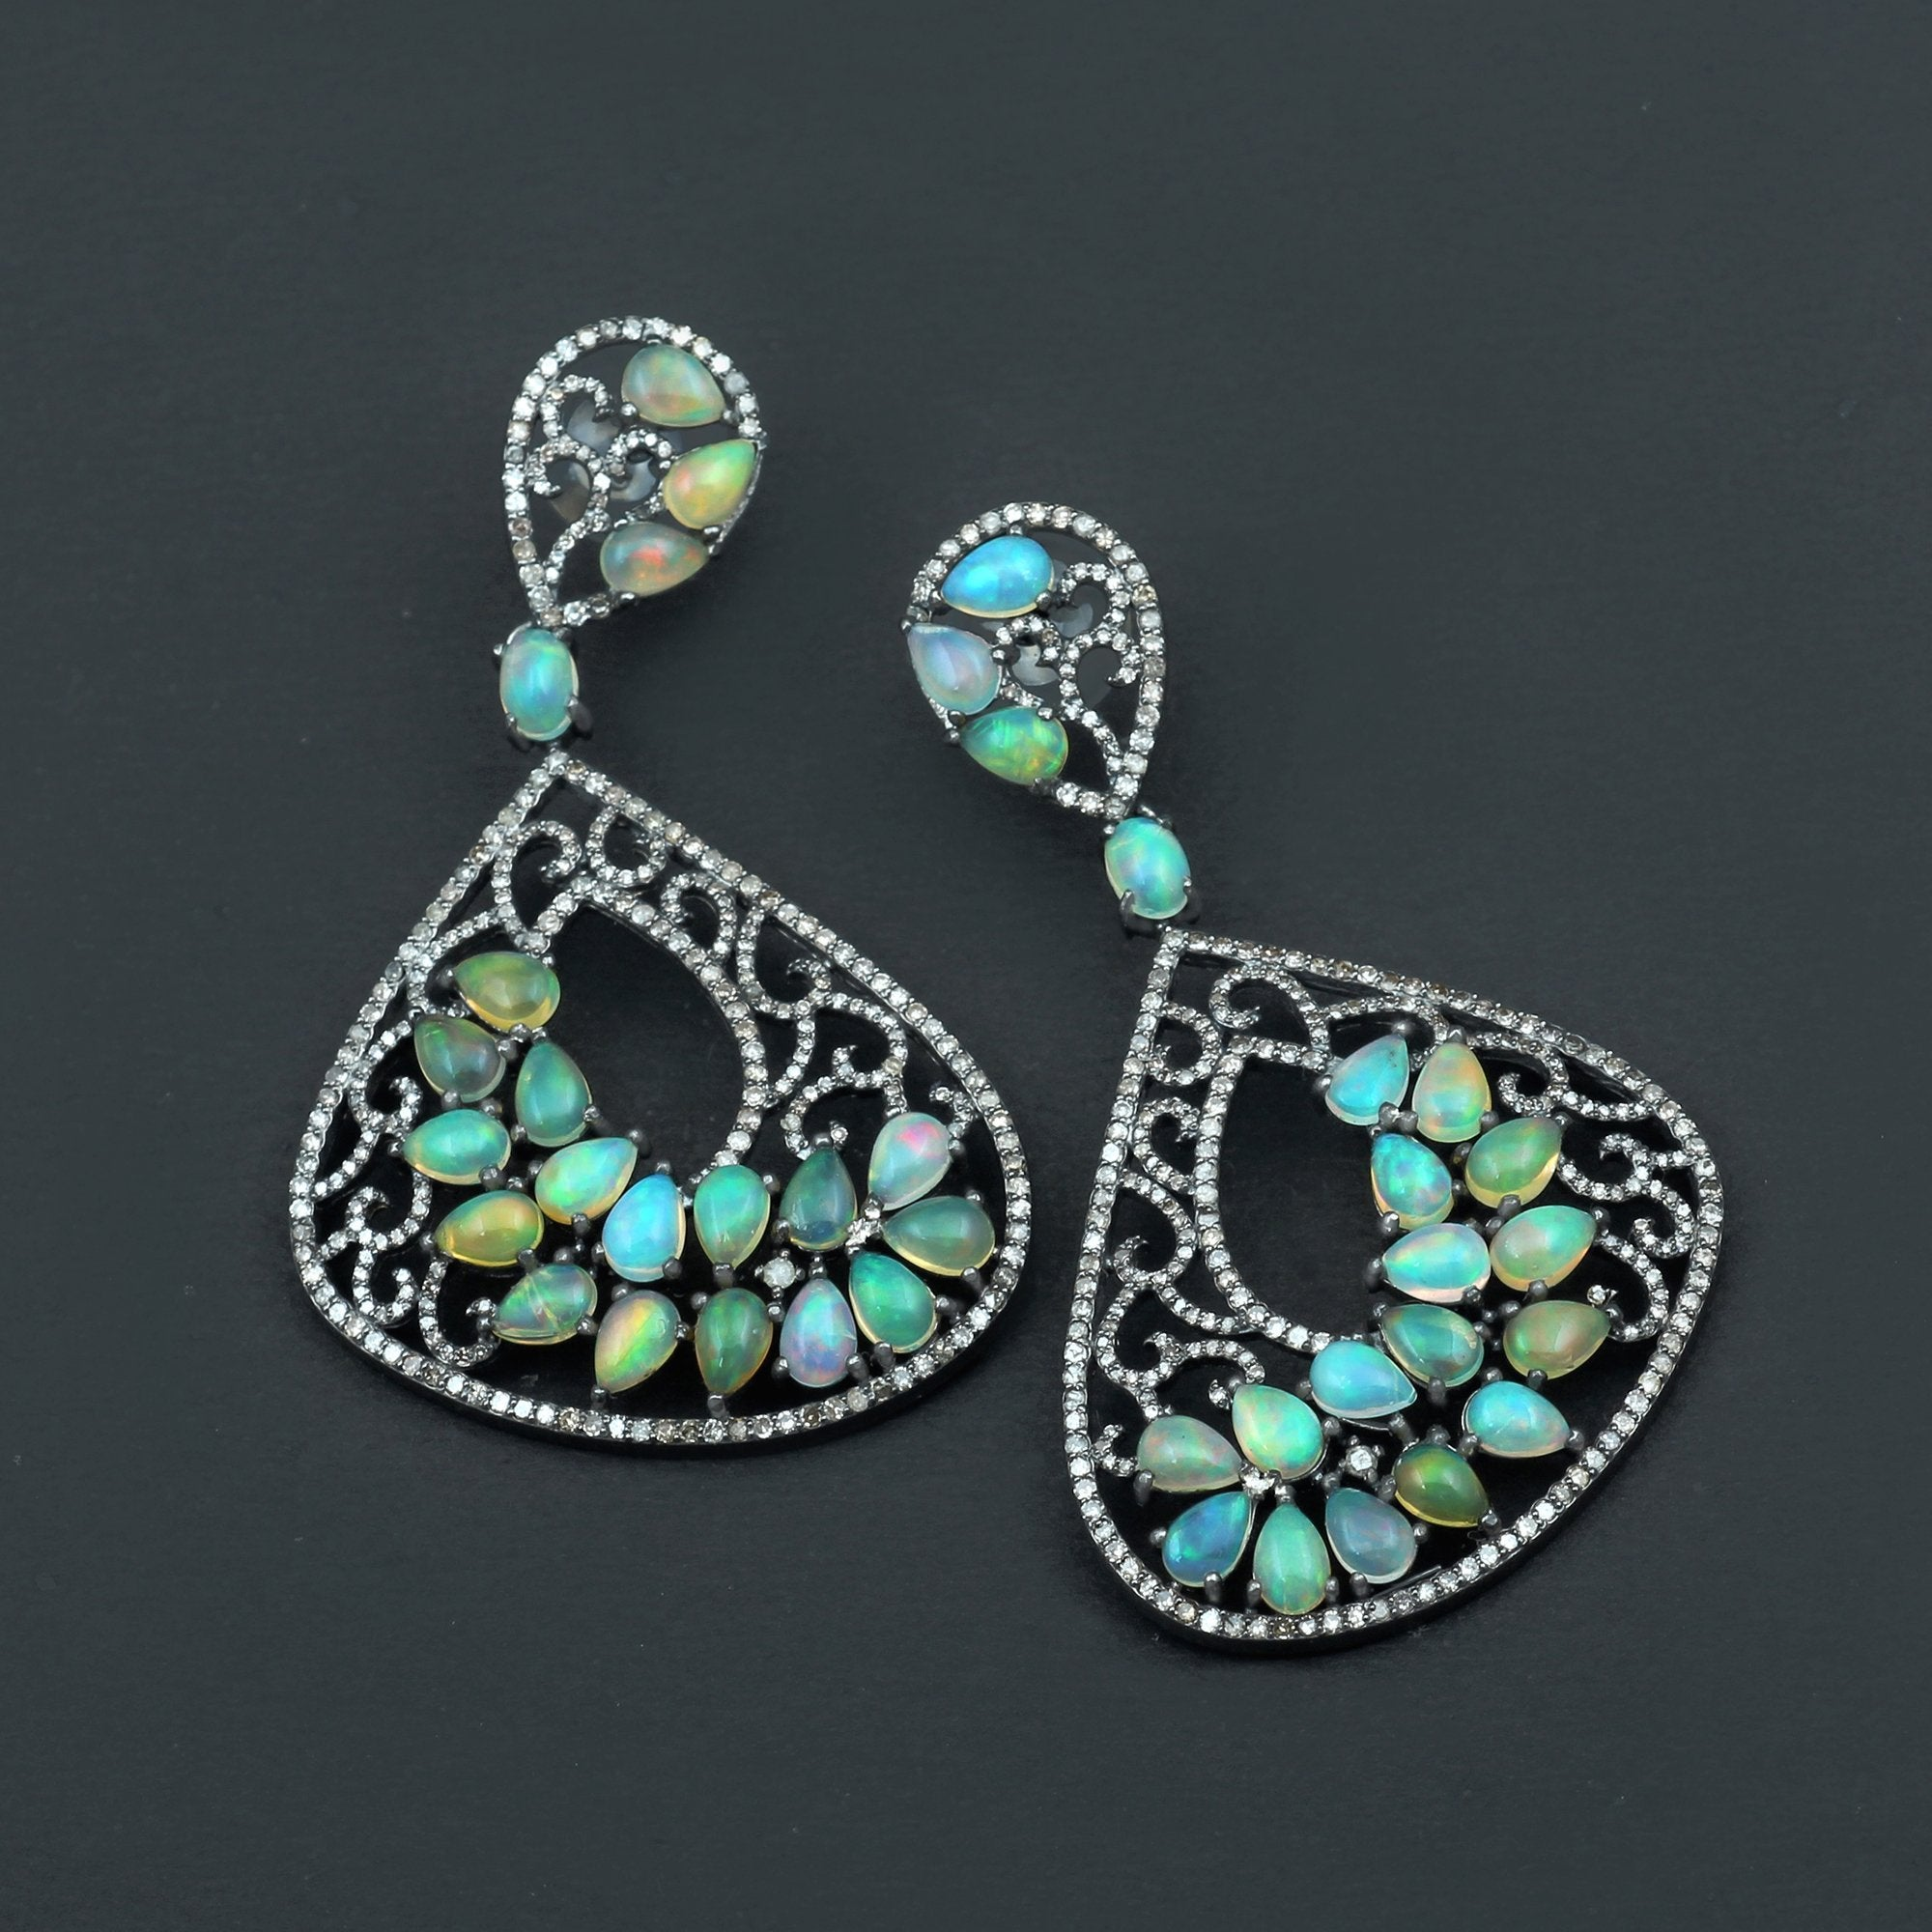 Ethopian Opal & Diamond Earrings 925 Sterling Silver AE-1230